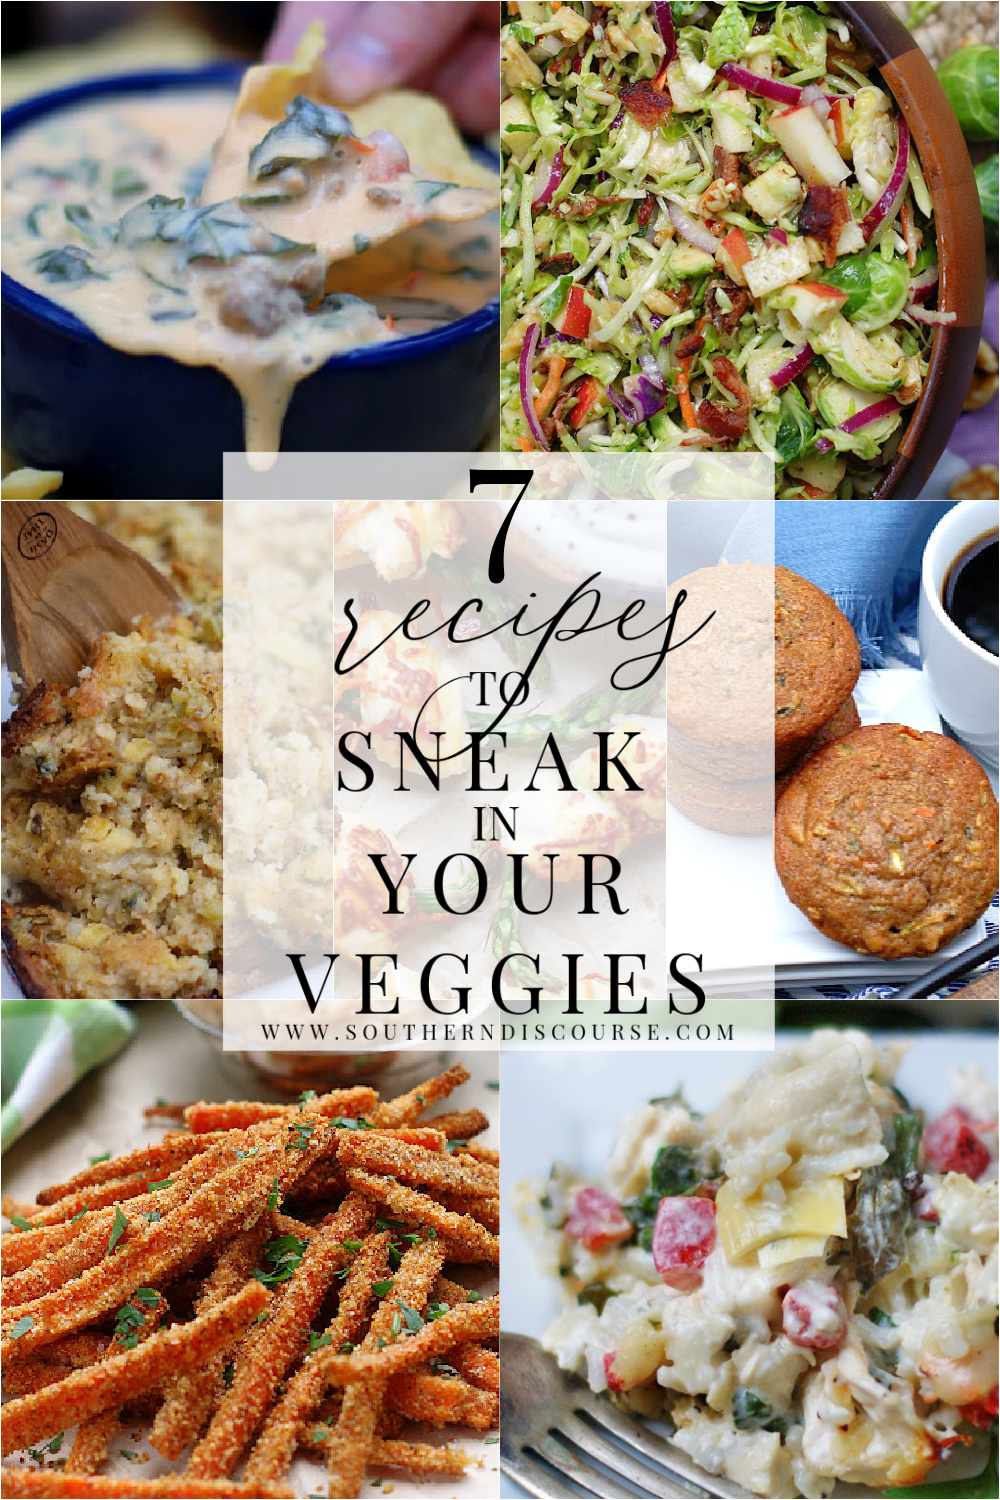 From dips to appetizers, snacks, side dishes, even comfort meals, this week's Saturday Seven showcases wonderful ways to incorporate more veggies into your menu, ways that even the pickiest eaters will love!